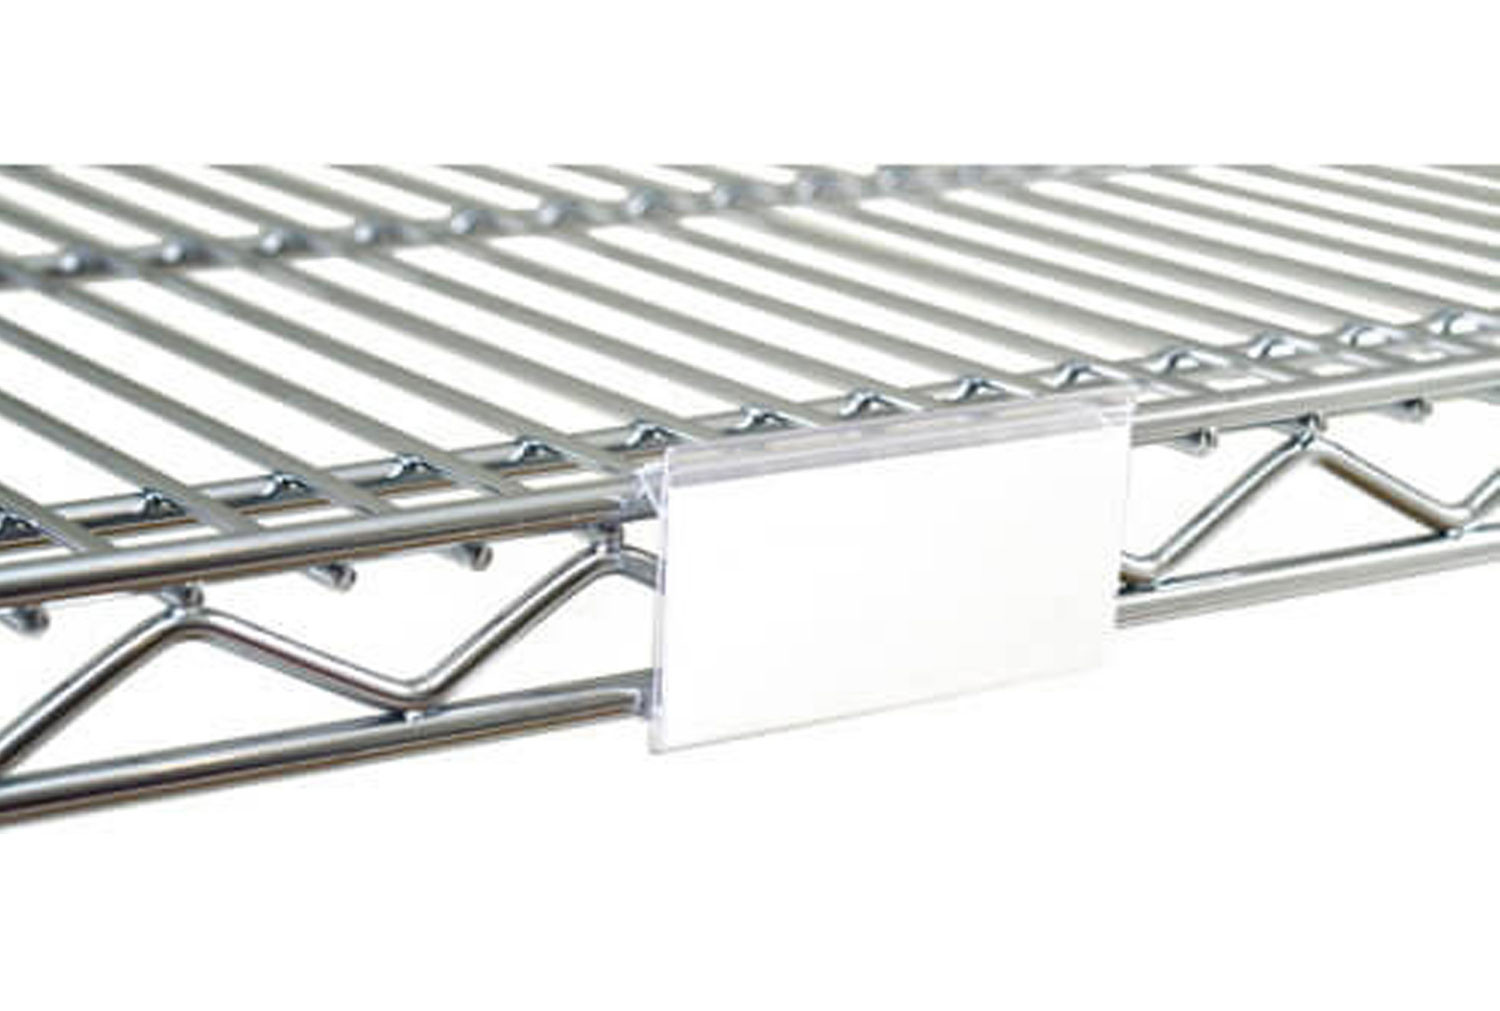 Clip On Label Display For Chrome Wire Basket Shelving